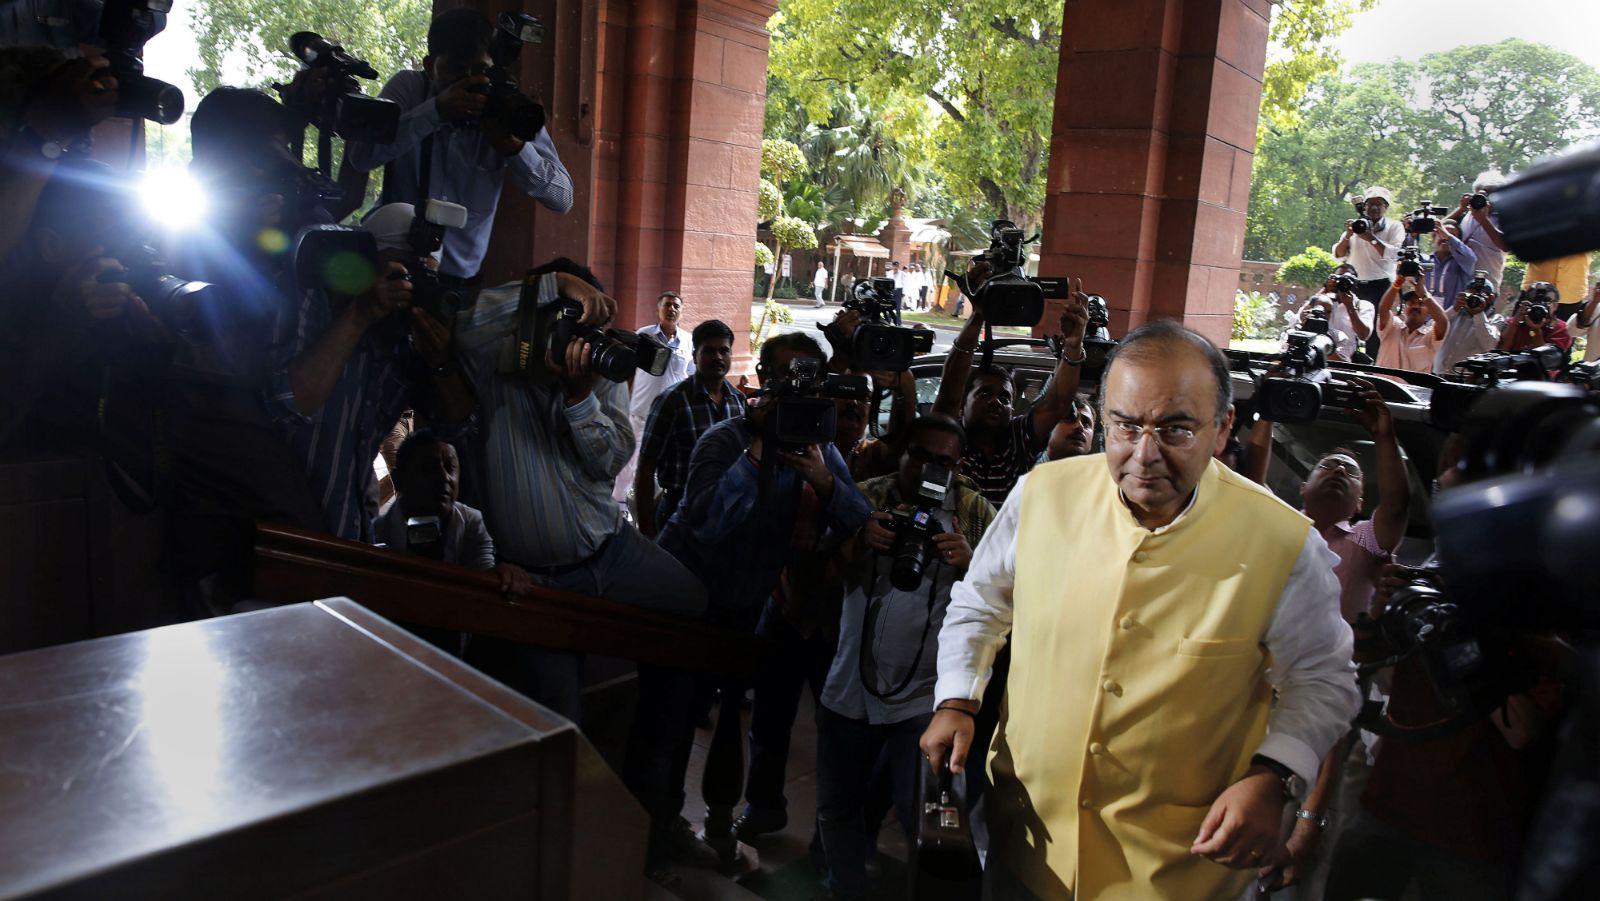 Indian Finance Minister Arun Jaitley arrives to present the 2014-15 union budget at the Indian parliament in New Delhi, Thursday, July 10, 2014. India's new government has introduced an ambitious reform-minded budget focusing on promoting manufacturing and infrastructure, raising the tax base and overhauling populist subsidies.